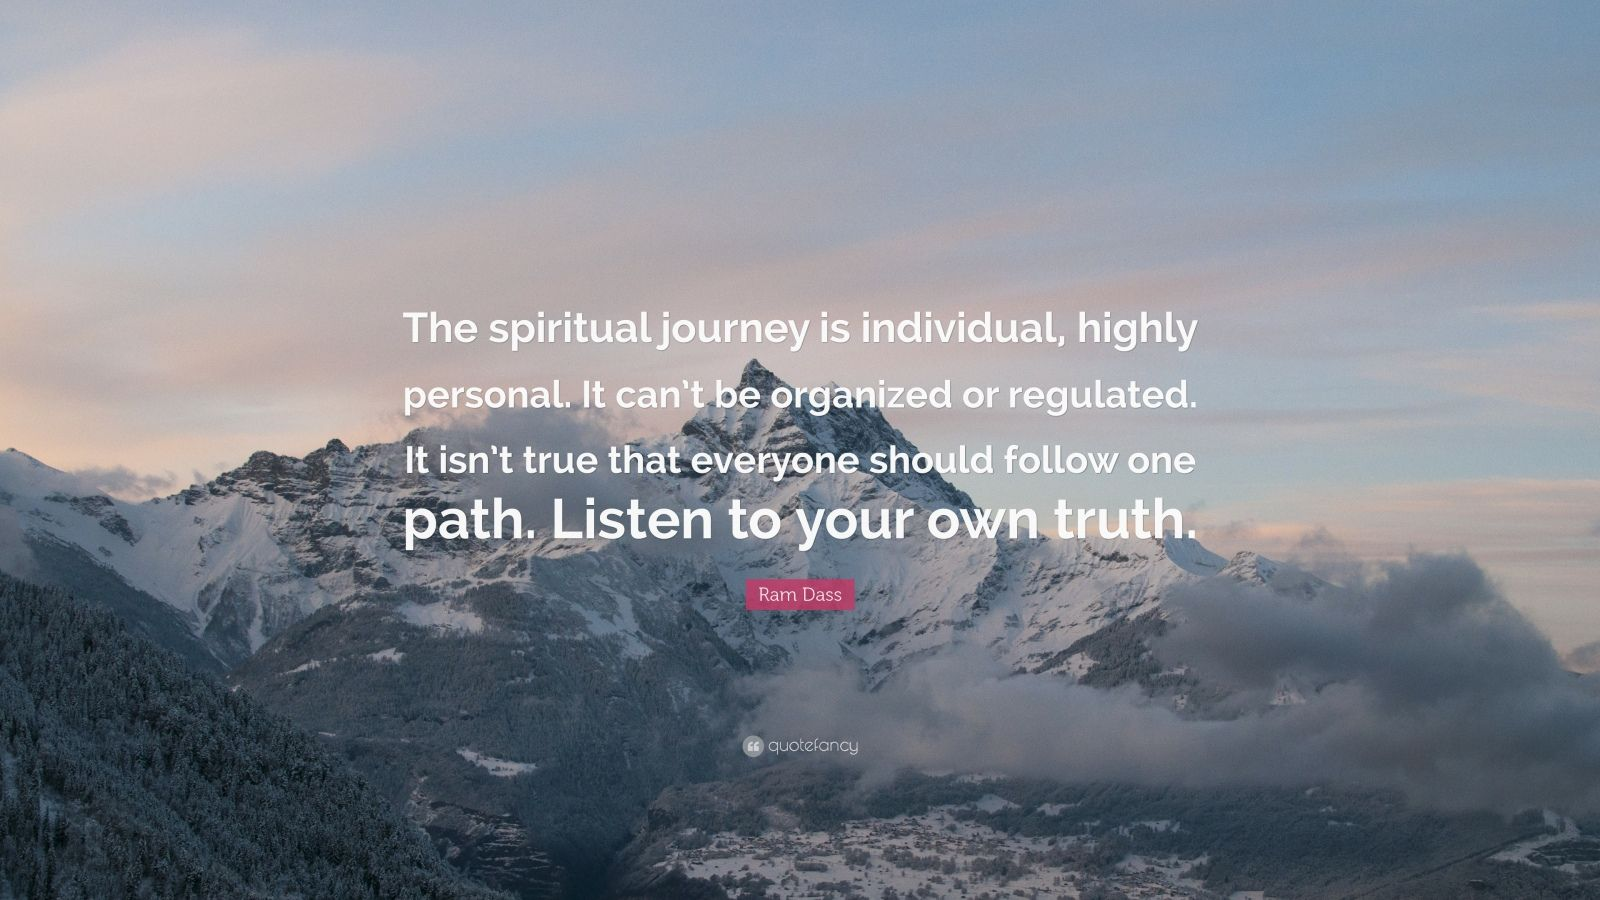 Wallpaper Of Yoga Quote Ram Dass Quote The Spiritual Journey Is Individual